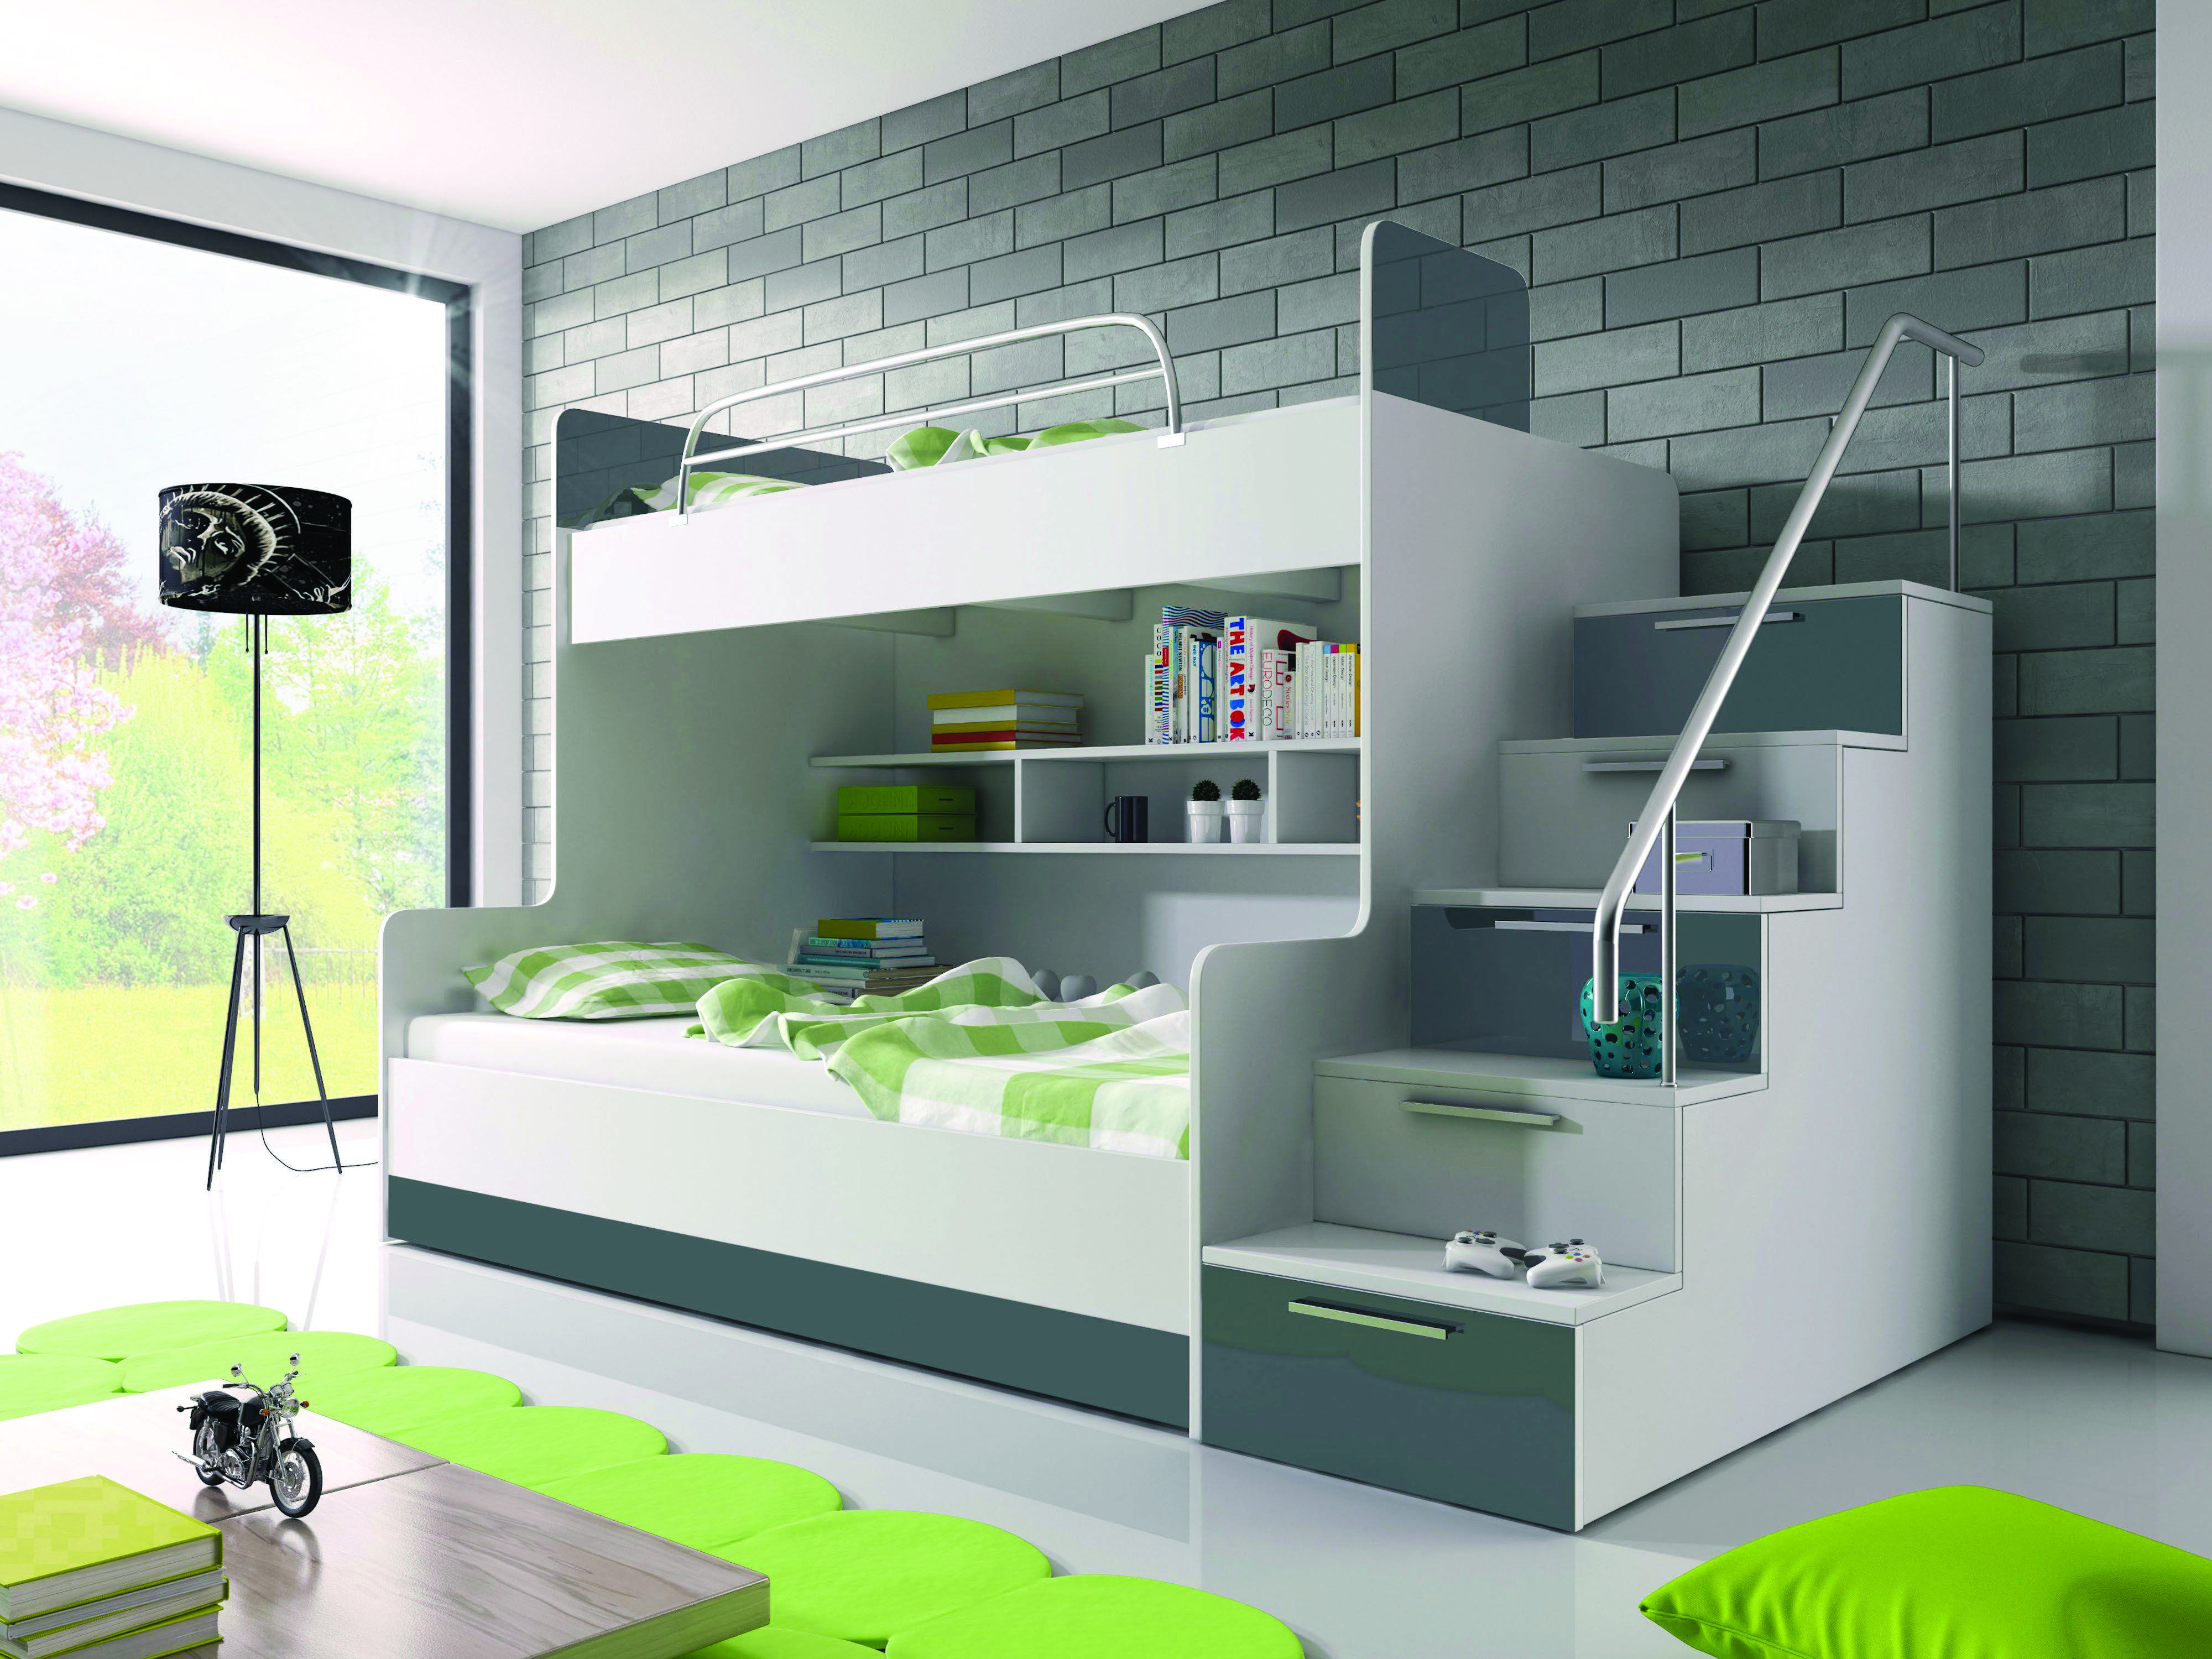 8 Loft Bedroom Ideas For Your Tiny Bed Room Homes Tre Modern Bunk Beds Bunk Beds With Stairs Kid Beds